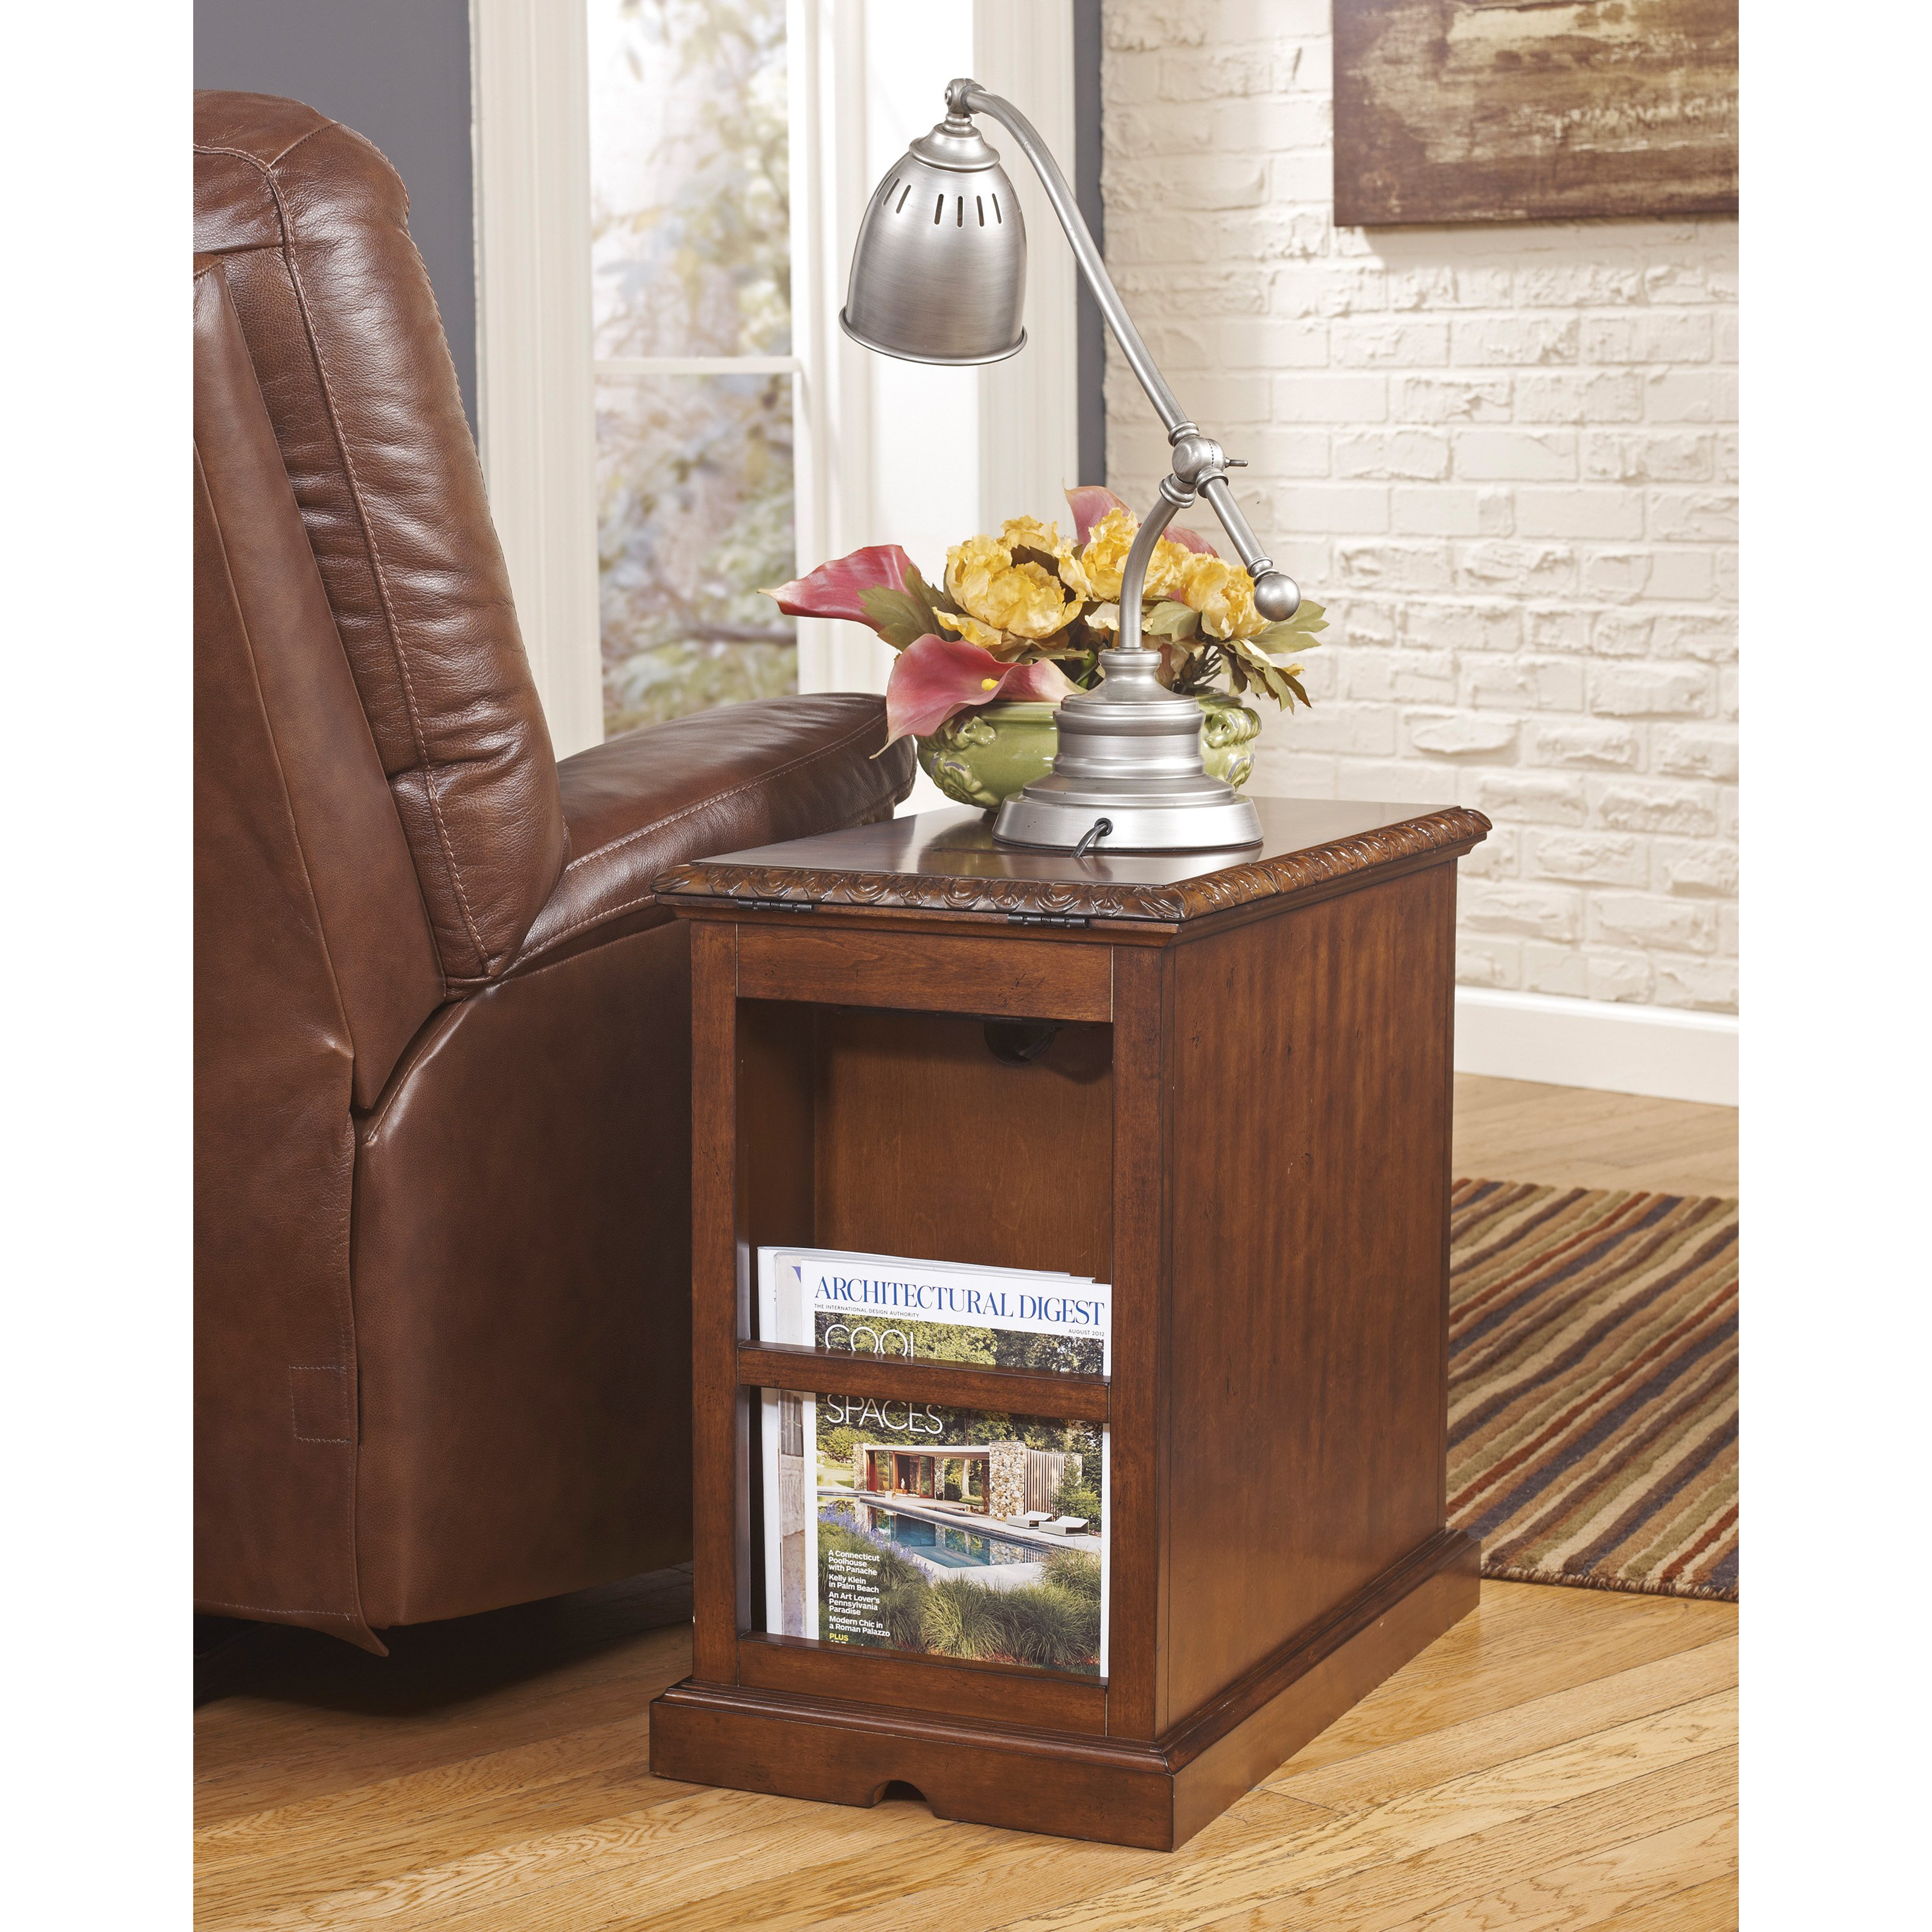 furniture complete your living room with new chairside end table tables storage basket drawers shelves skinny wedge accent uttermost sinley mirror coffee ikea target acrylic